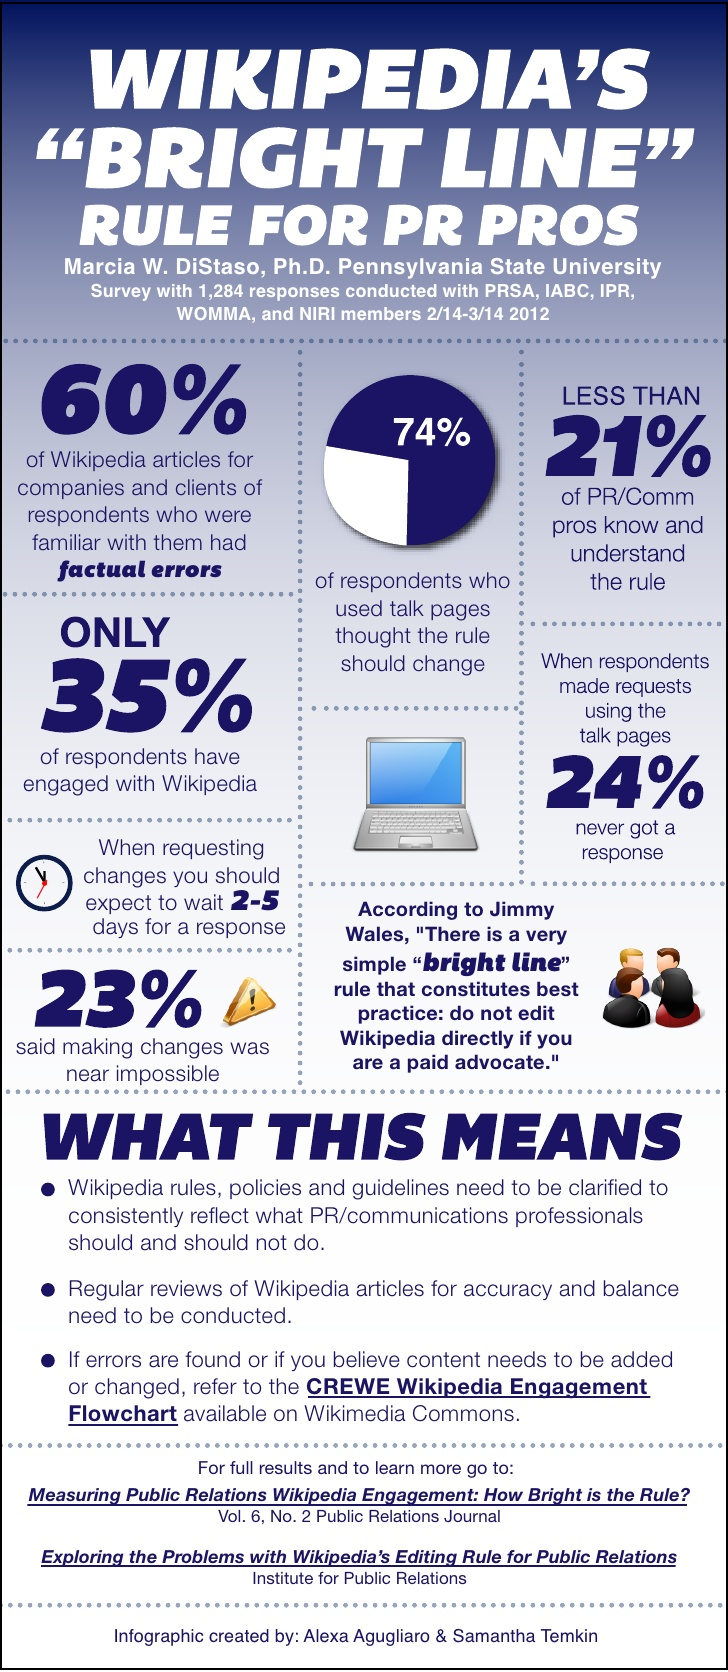 Wikipedia and Public Relations: Infographic